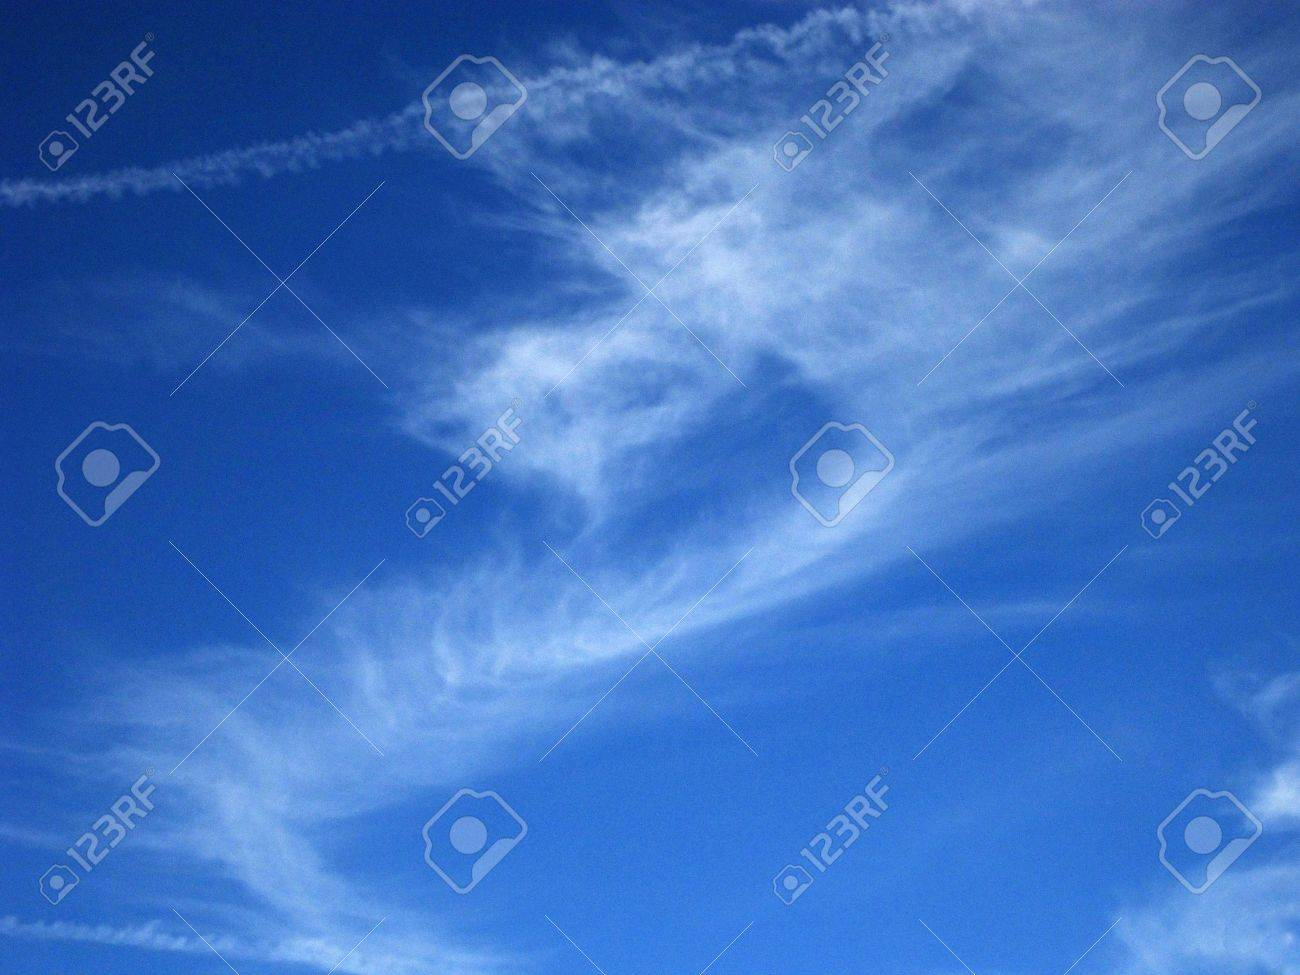 stock photo wispy jet vapor trails mingle with cirrus clouds in a deep blue sky